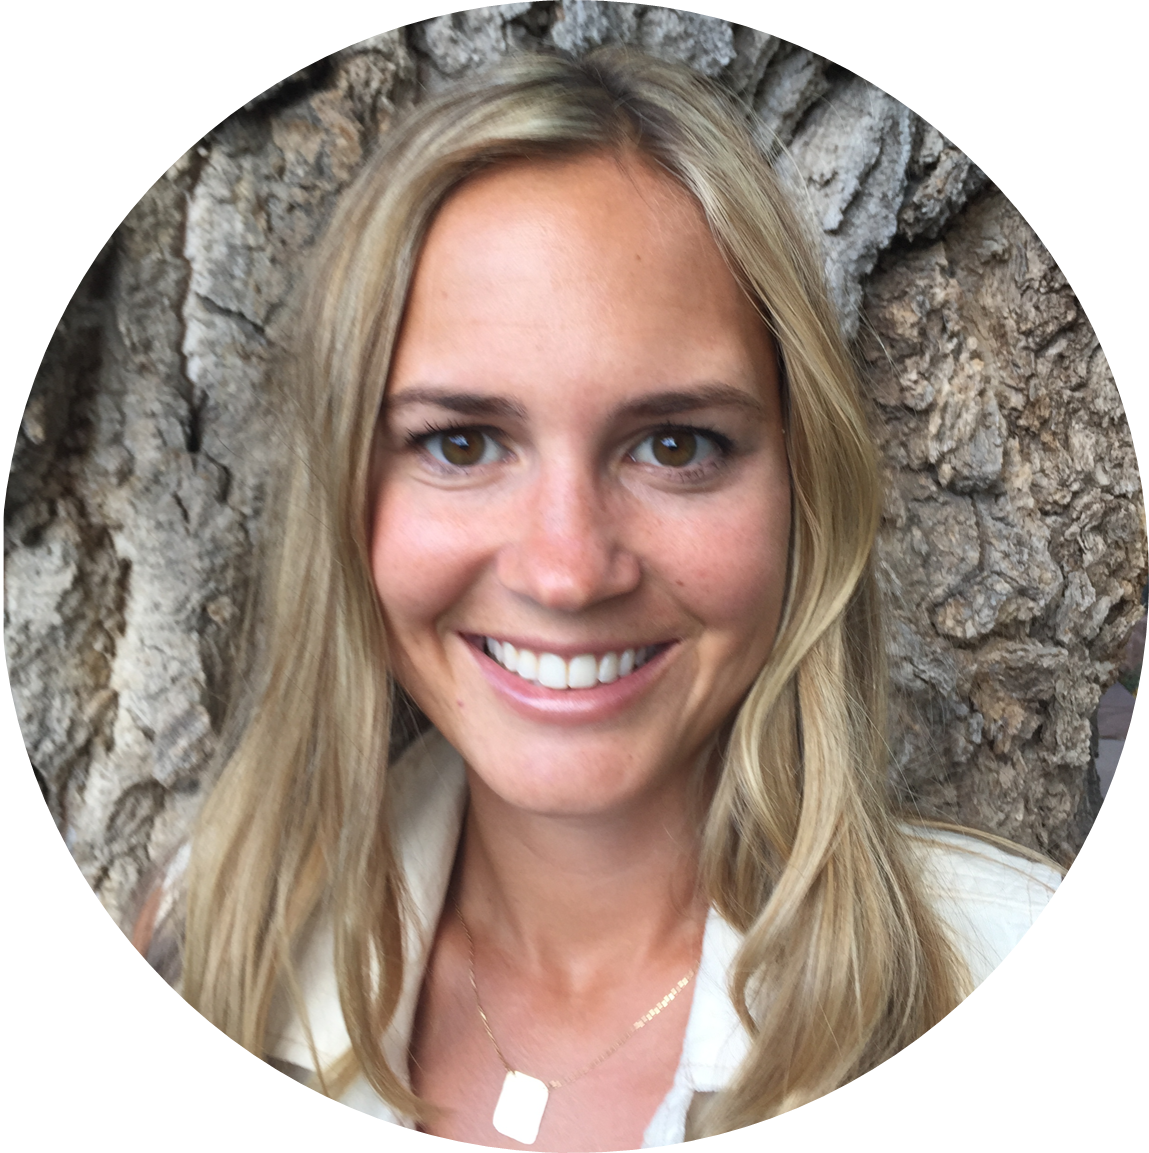 Caroline Stevens,  is a traveler, writer and communications professional living in San Francisco. She is the creator of Wander with Caroline, a compilation of travel tips and recommendations from her explorations across the globe.